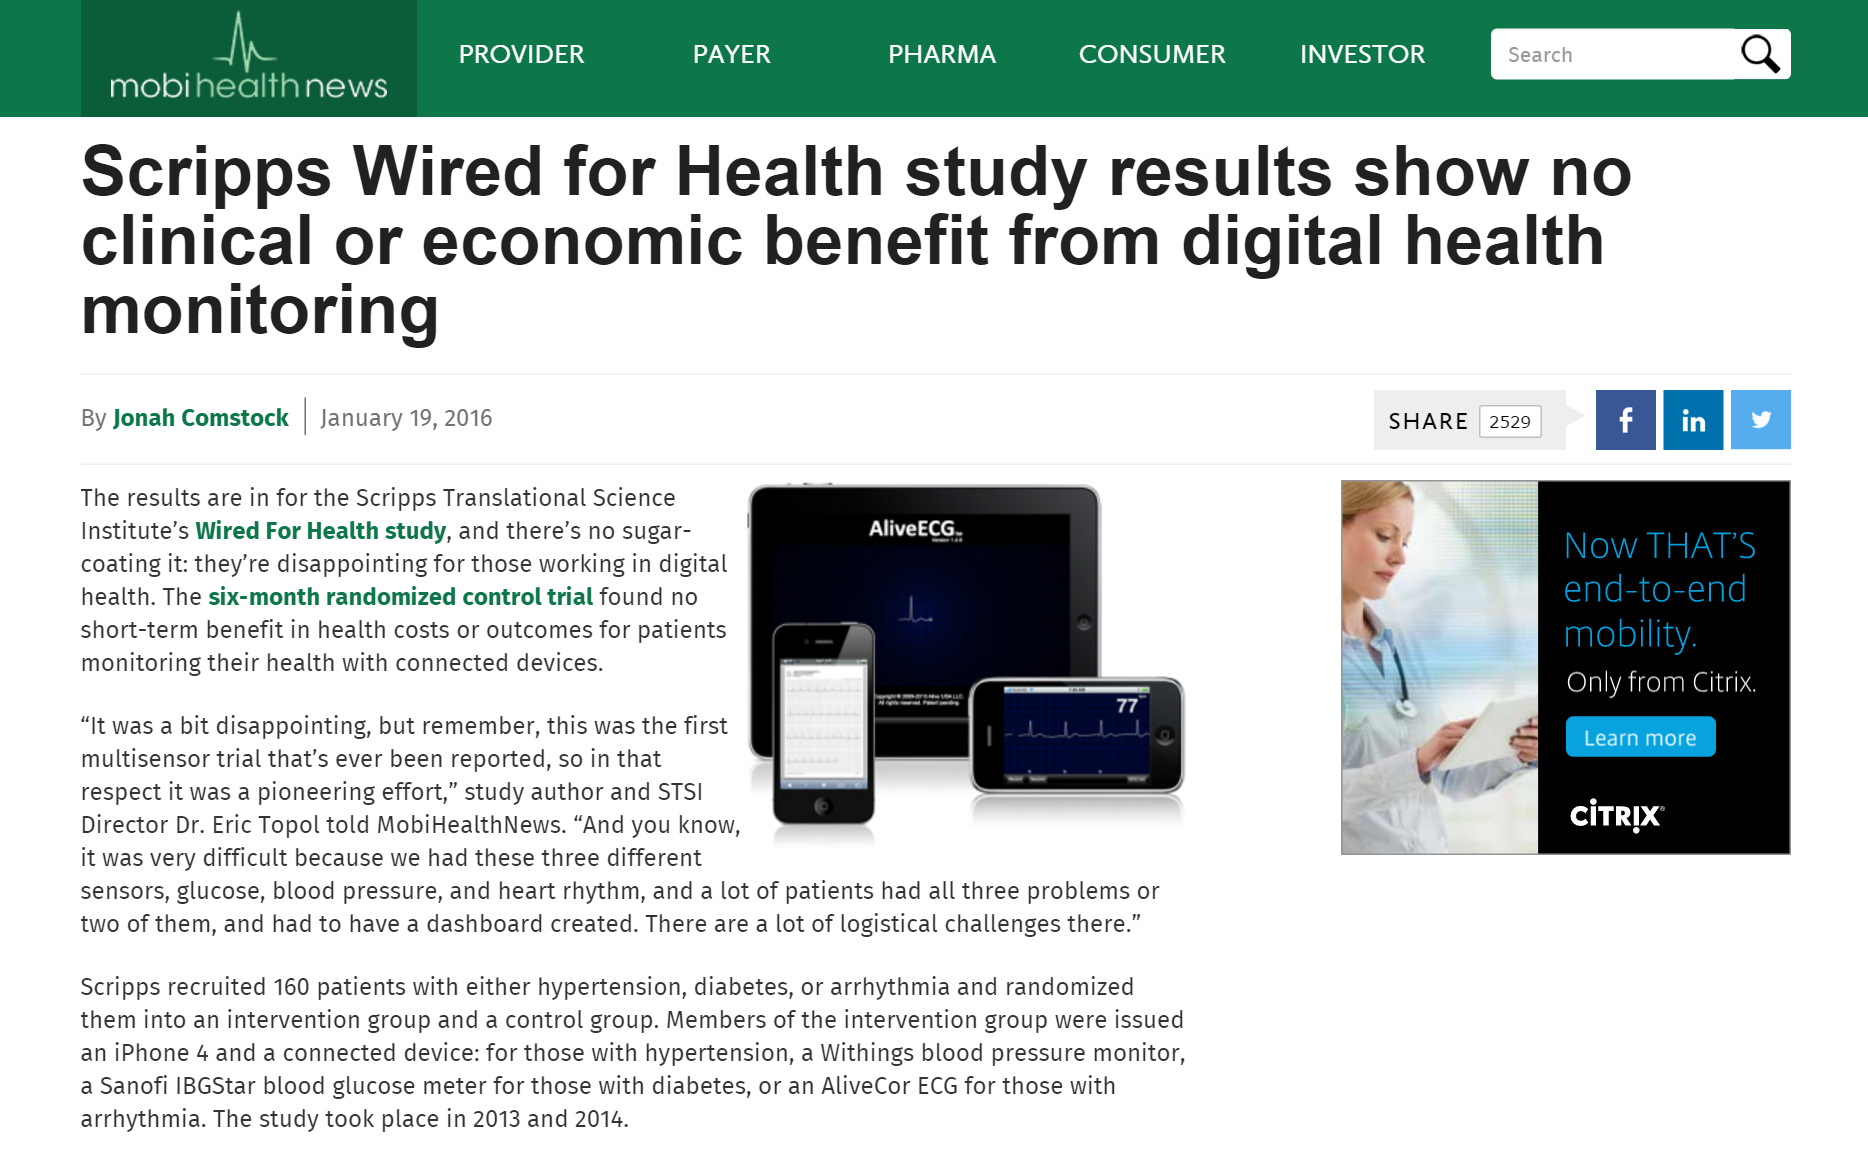 Scipps announcement shared by mobihealthnews.com